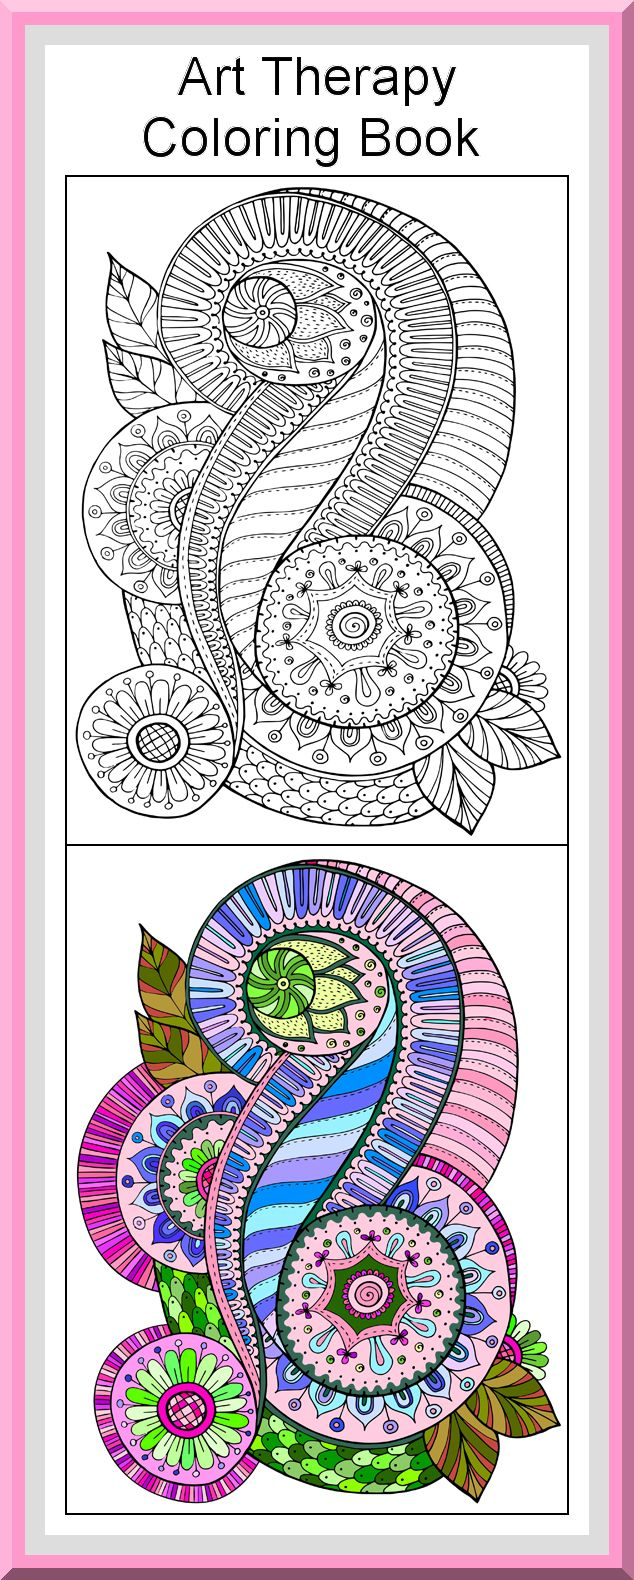 Coloring book outlines - Printable Art Therapy Coloring Pages 30 High Definition Coloring Pages Black Outlines With Colored Examples